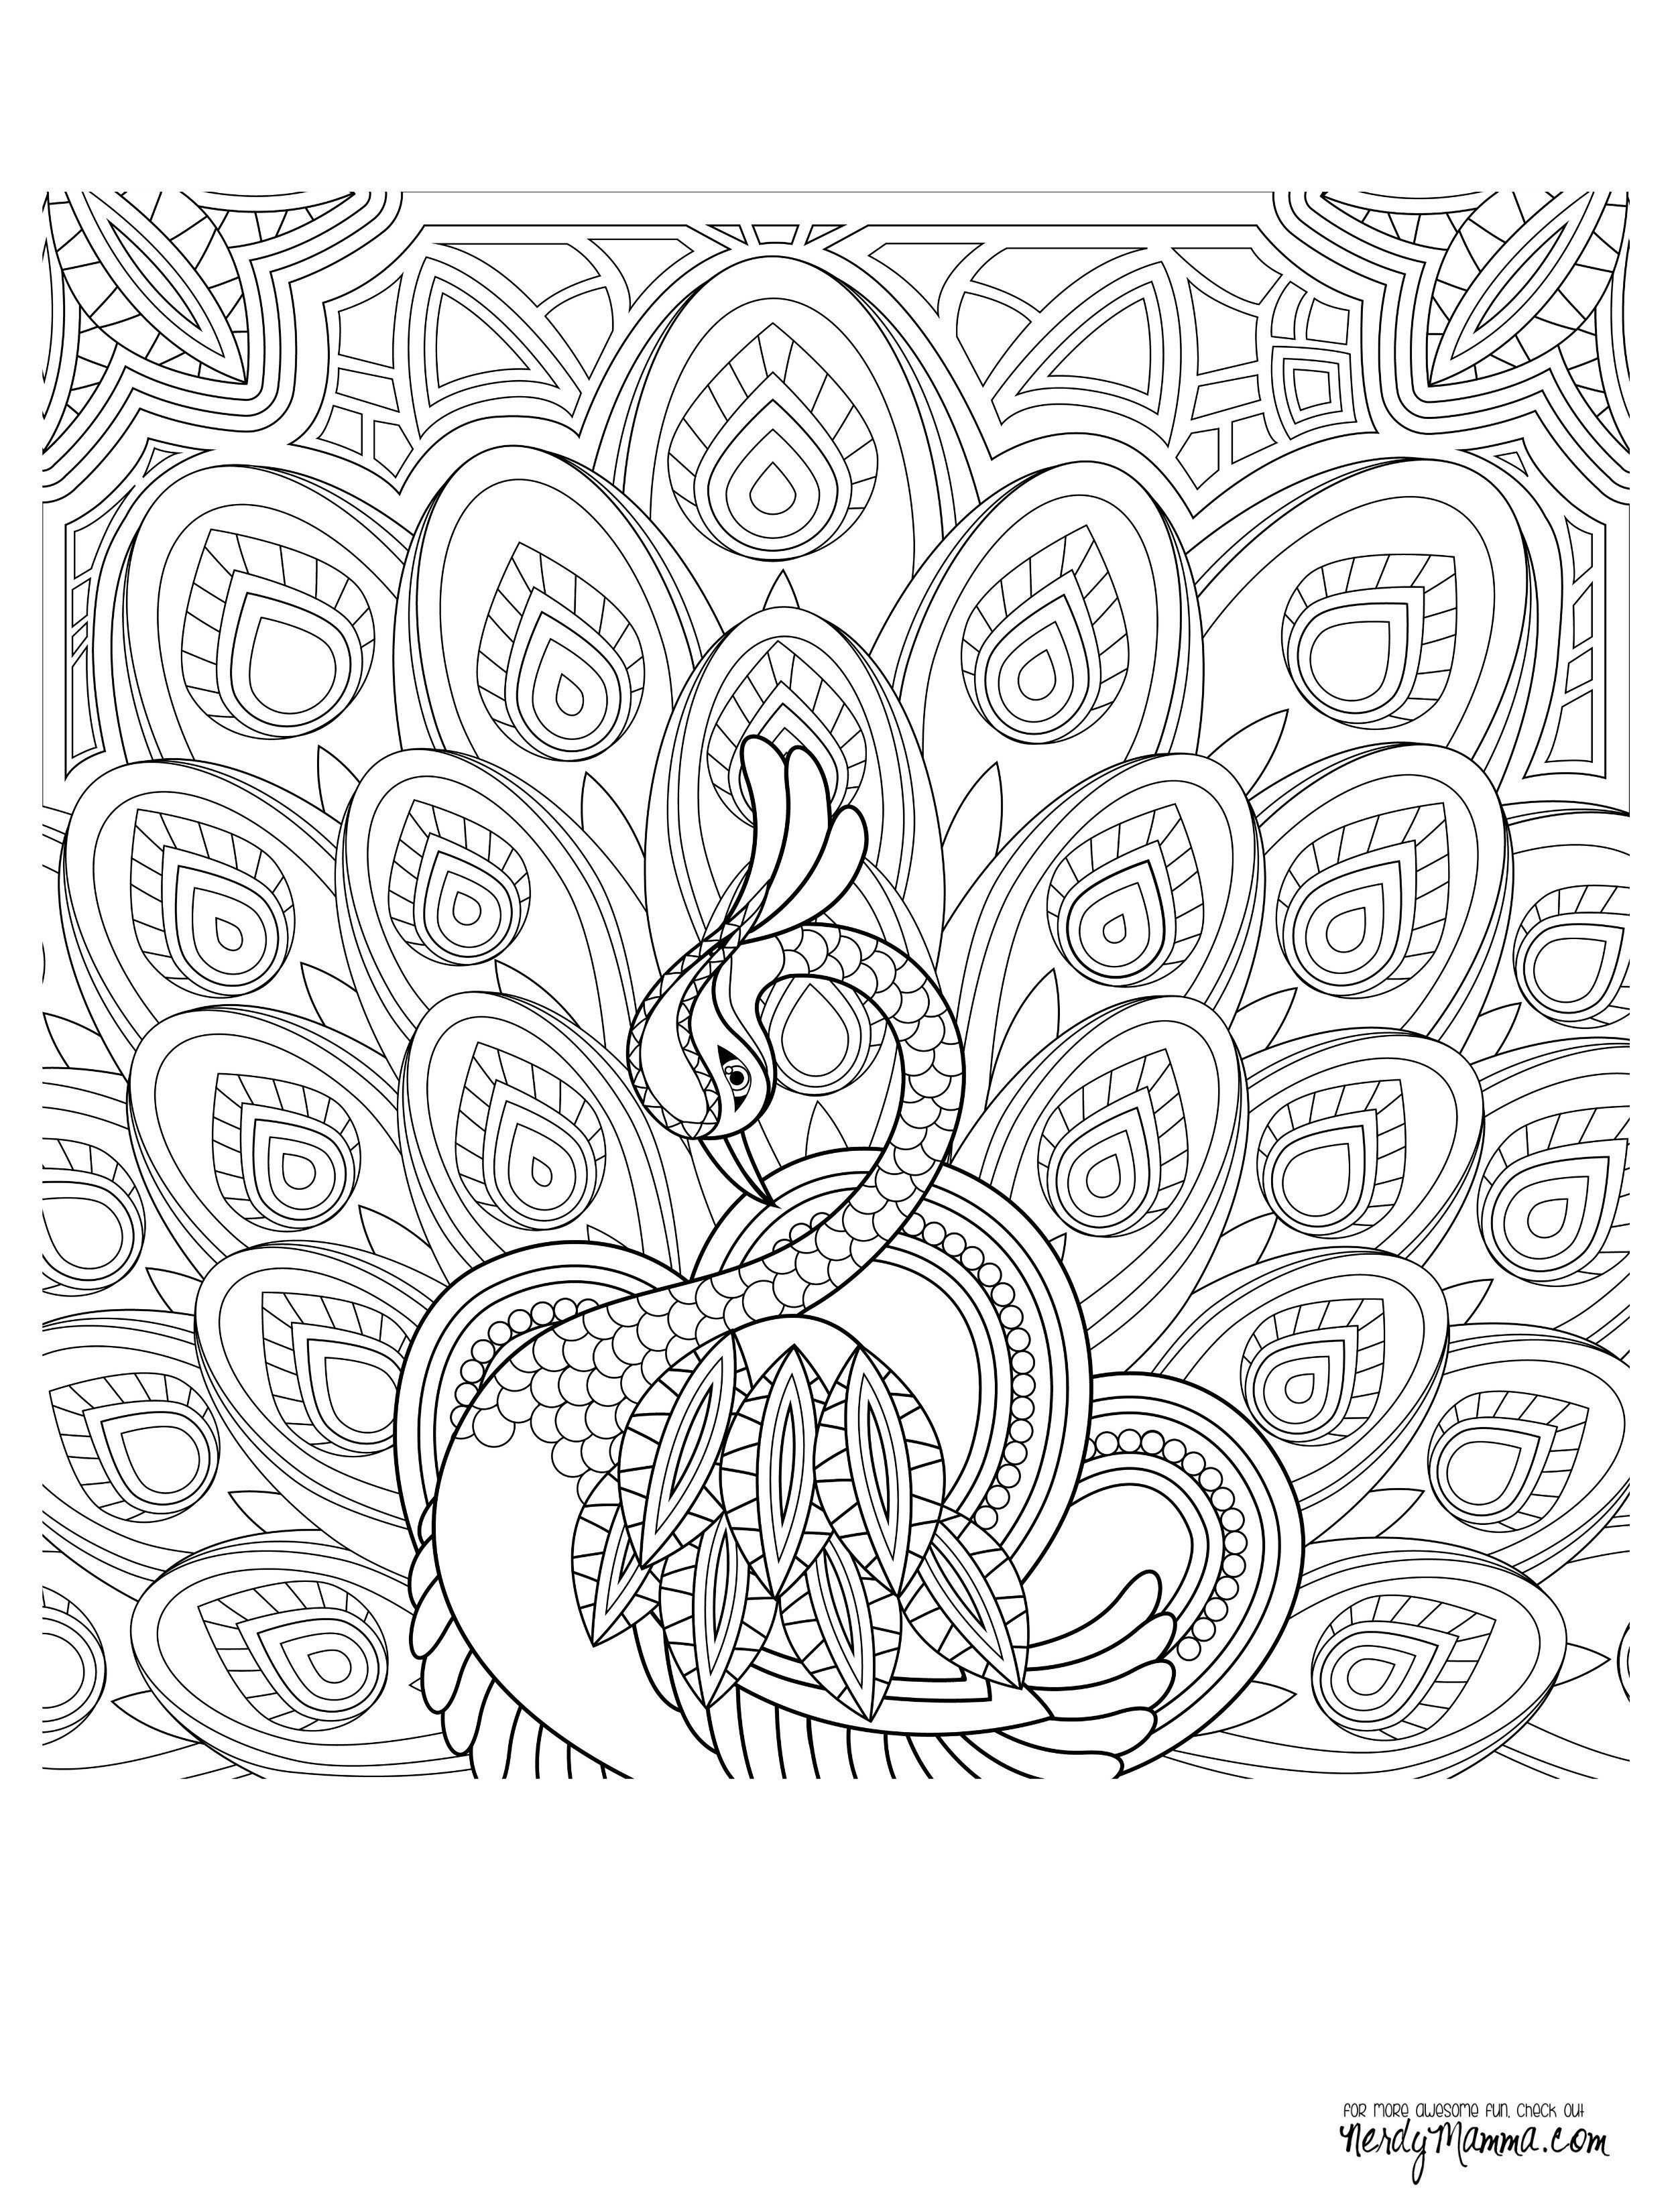 Free coloring pages of peacock feathers coloring everyday printable - Peacock Adult Coloring Page More